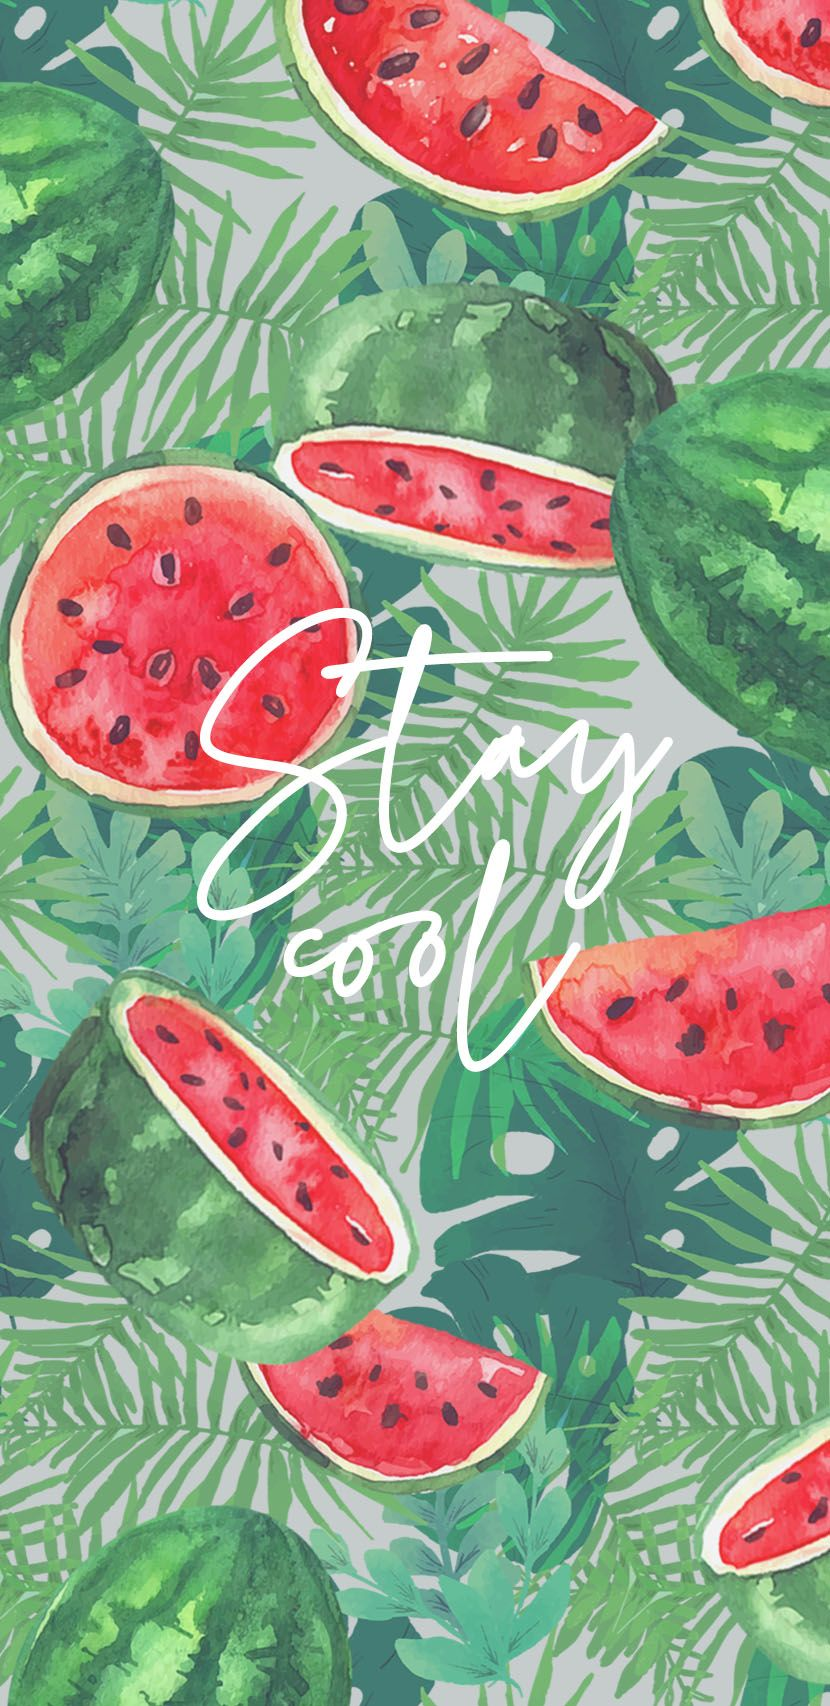 Say It With A Wallpaper Cute Summer Wallpapers Wallpaper Iphone Summer Watermelon Wallpaper